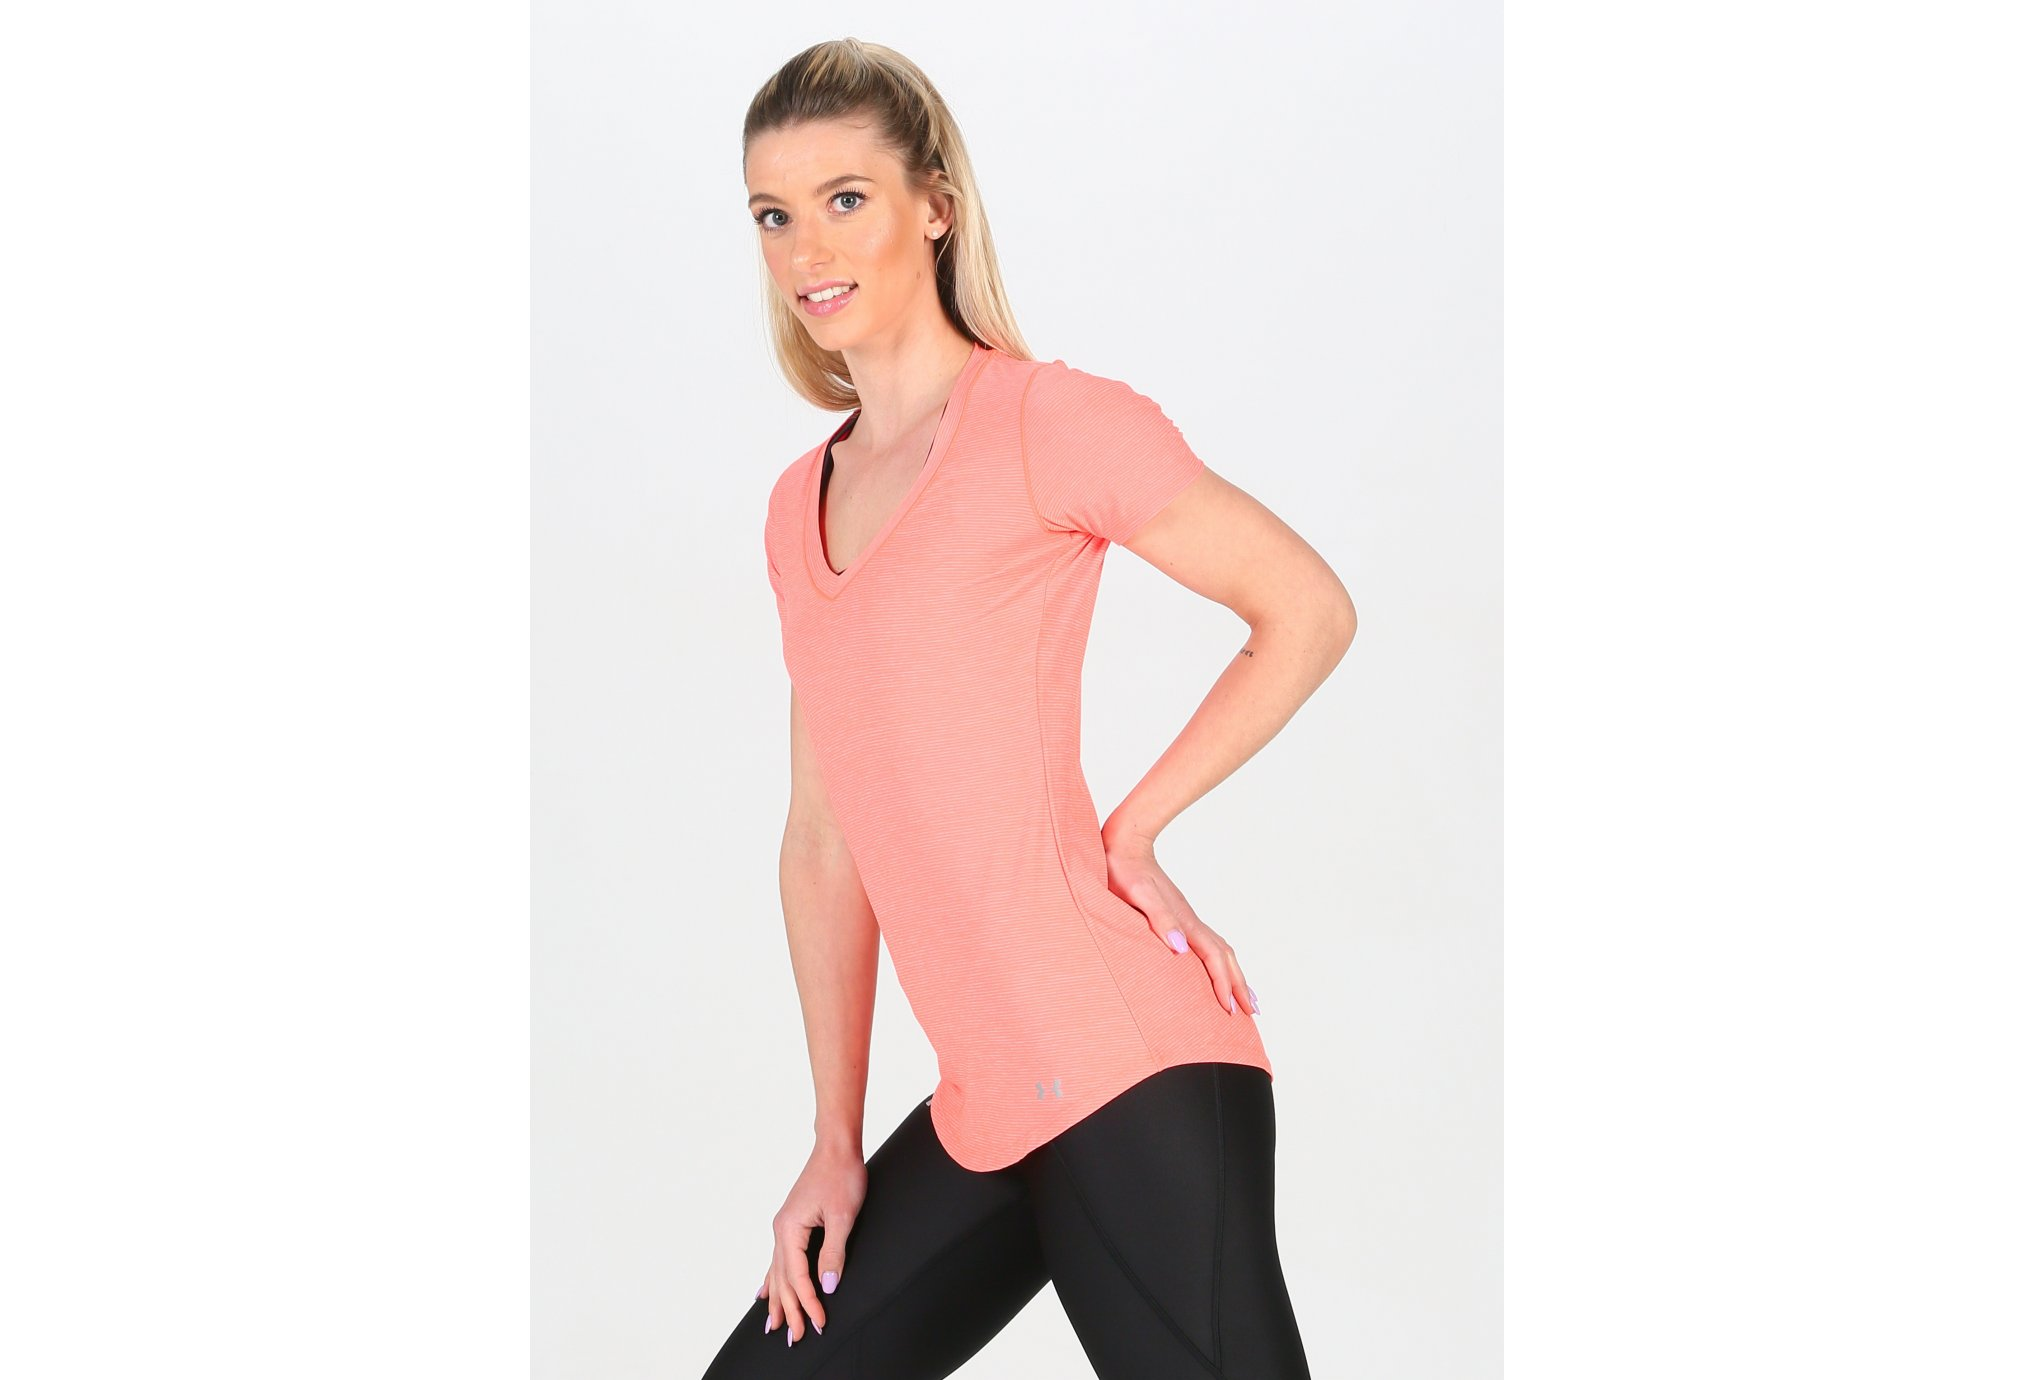 Under Armour Tee-shirt Perfect Pace W Diététique Vêtements femme